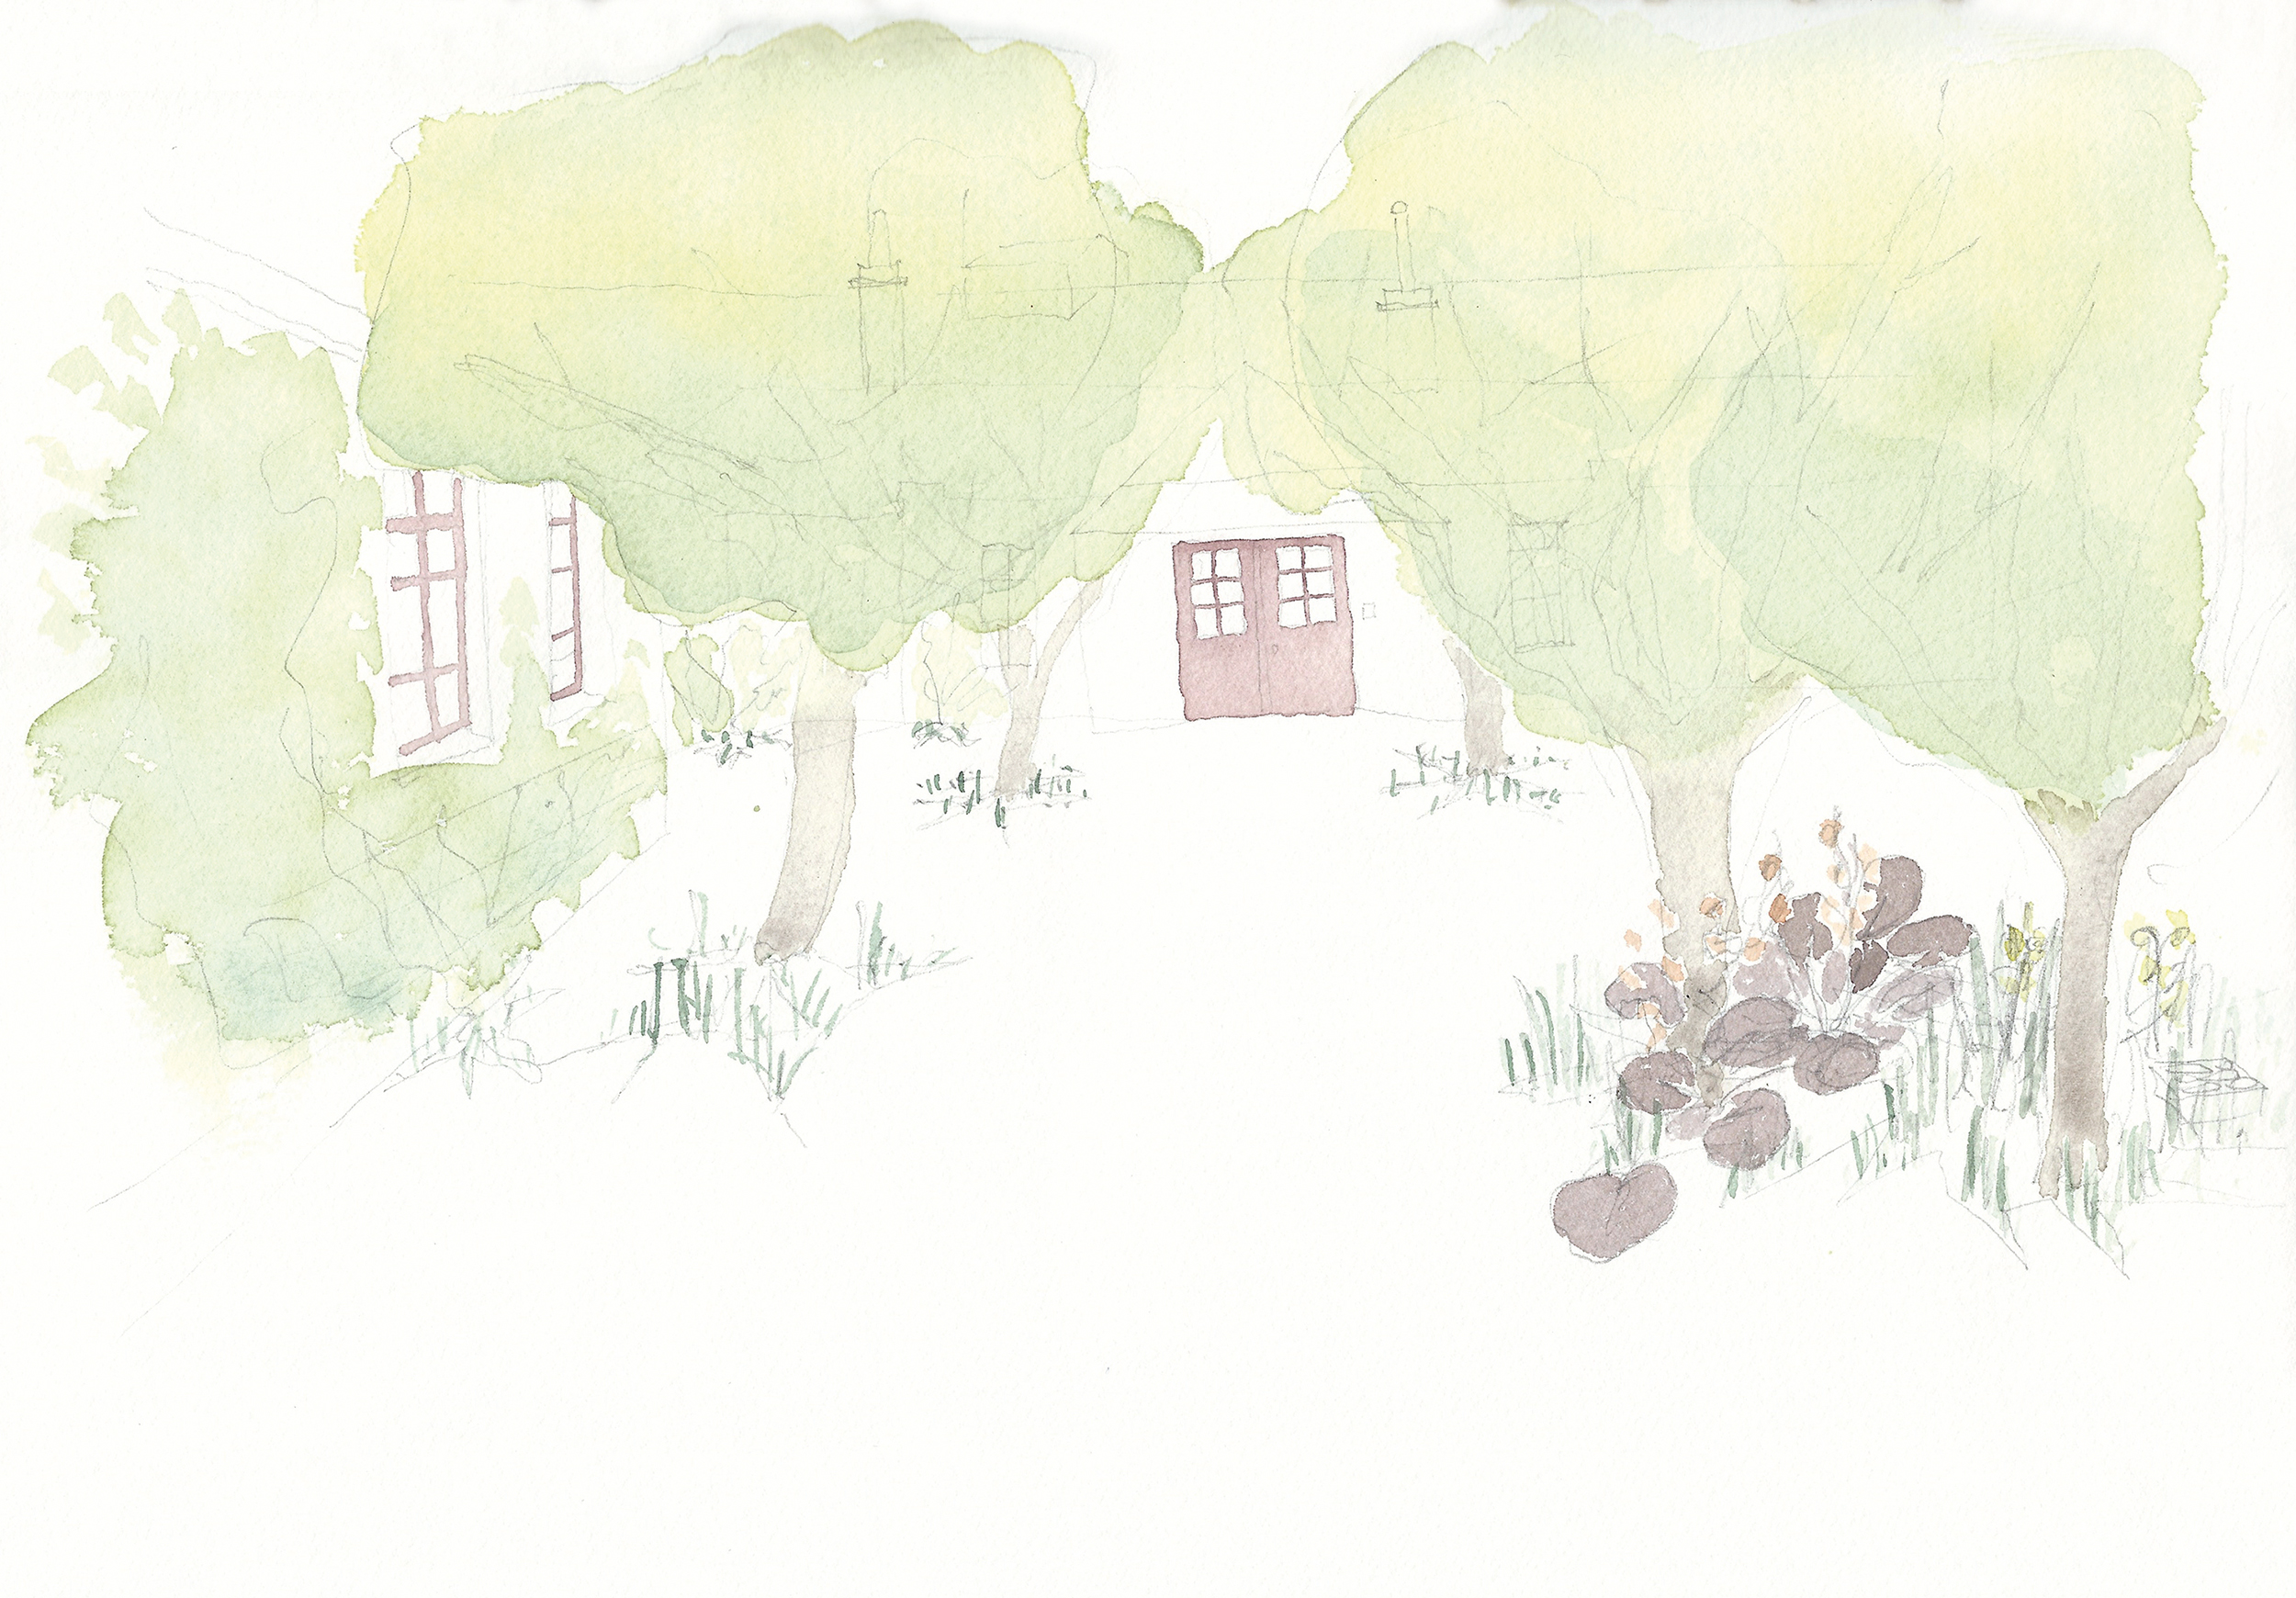 Entrance schoolyard invade by trees and plants